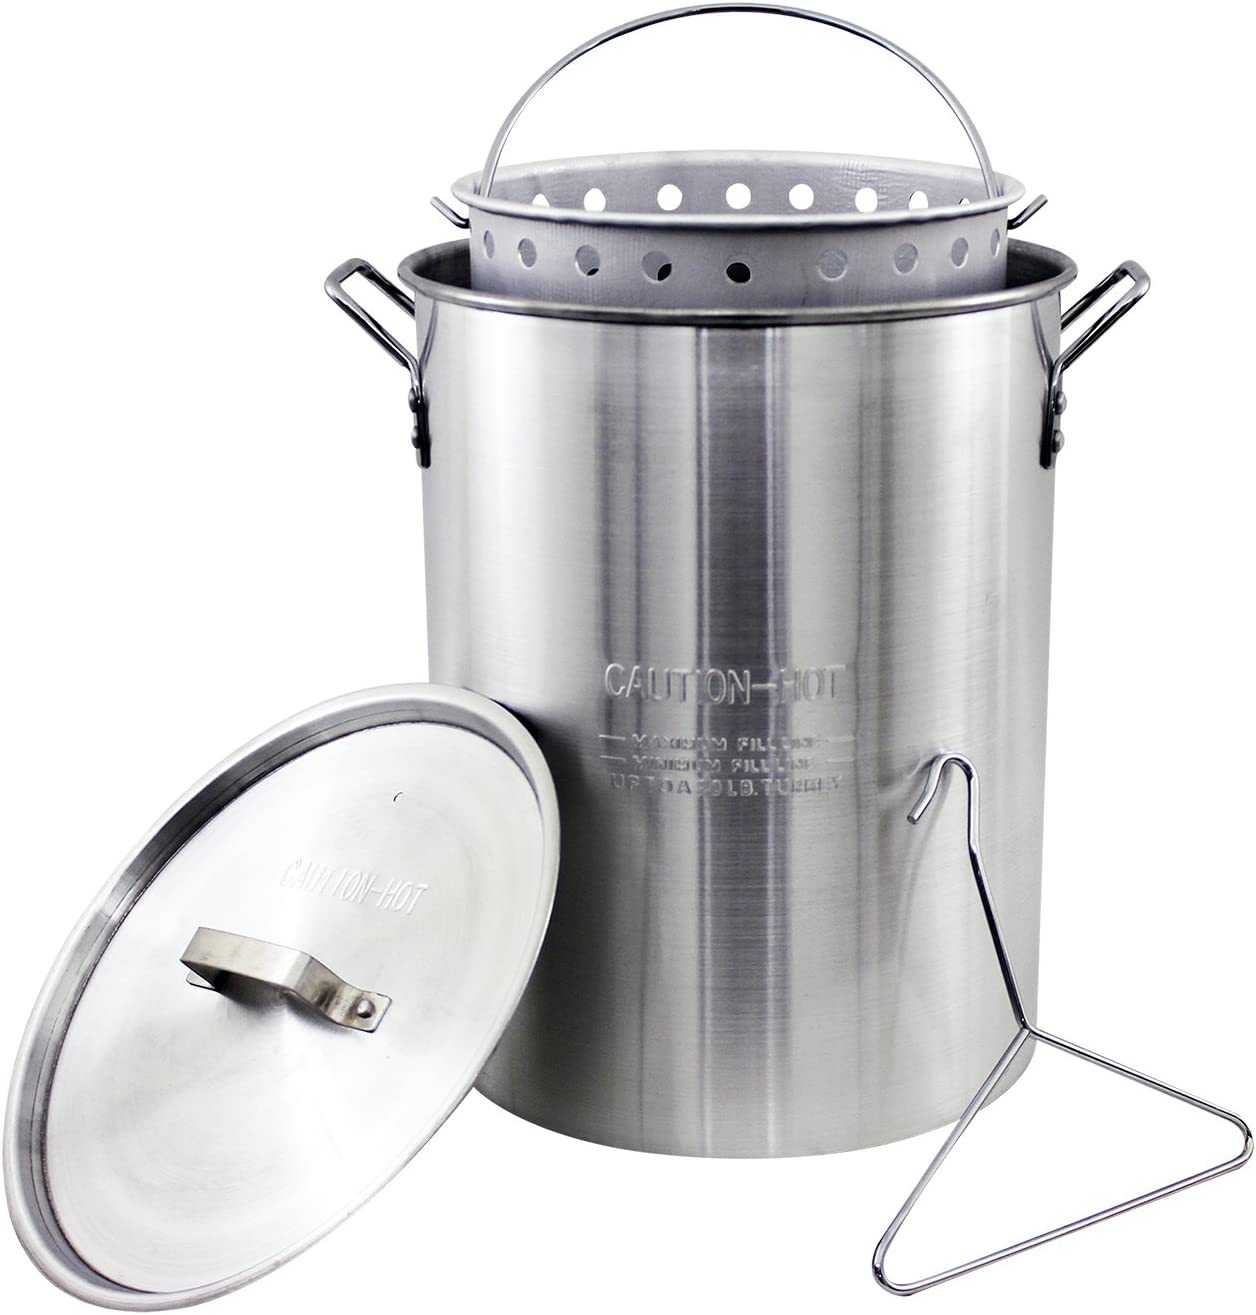 Chard ASP30, Aluminum Perforated Safety Hanger, 30 Quart Stock Pot and Strainer Basket